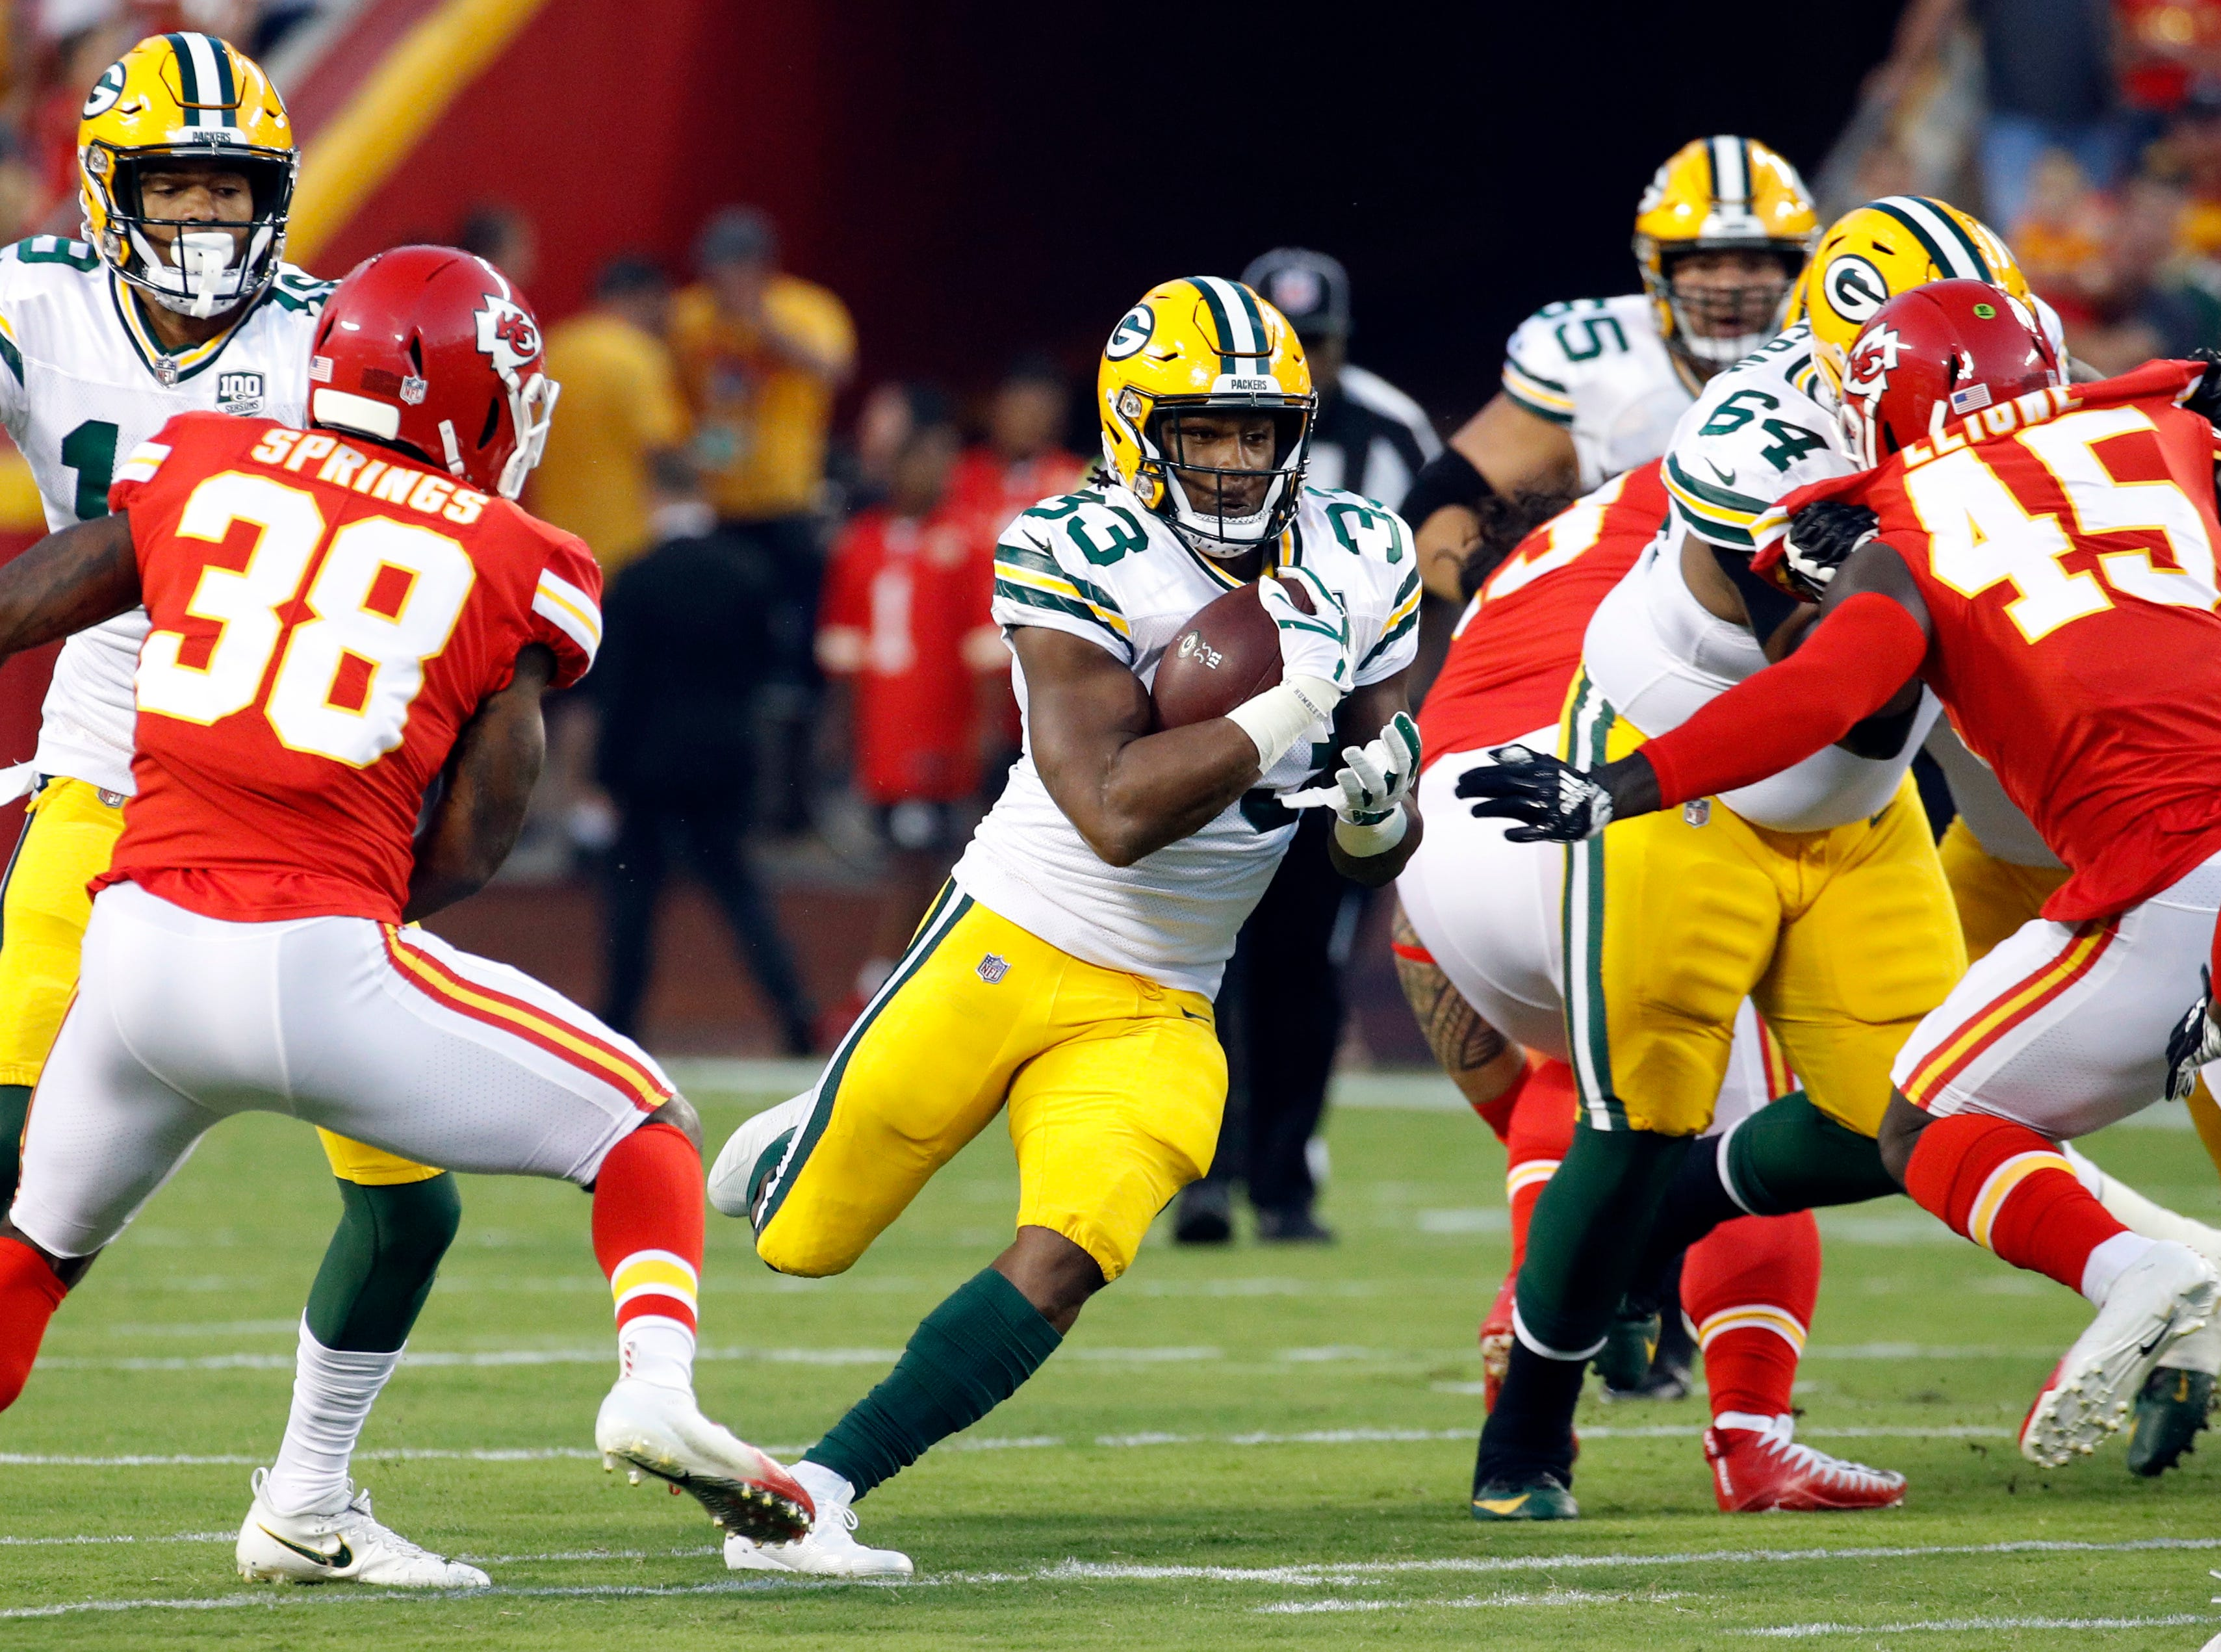 Green Bay Packers running back Aaron Jones (33) runs between Kansas City Chiefs cornerback Arrion Springs (38) and linebacker Ukeme Eligwe (45) during the first half of an NFL preseason football game in Kansas City, Mo., Thursday, Aug. 30, 2018.